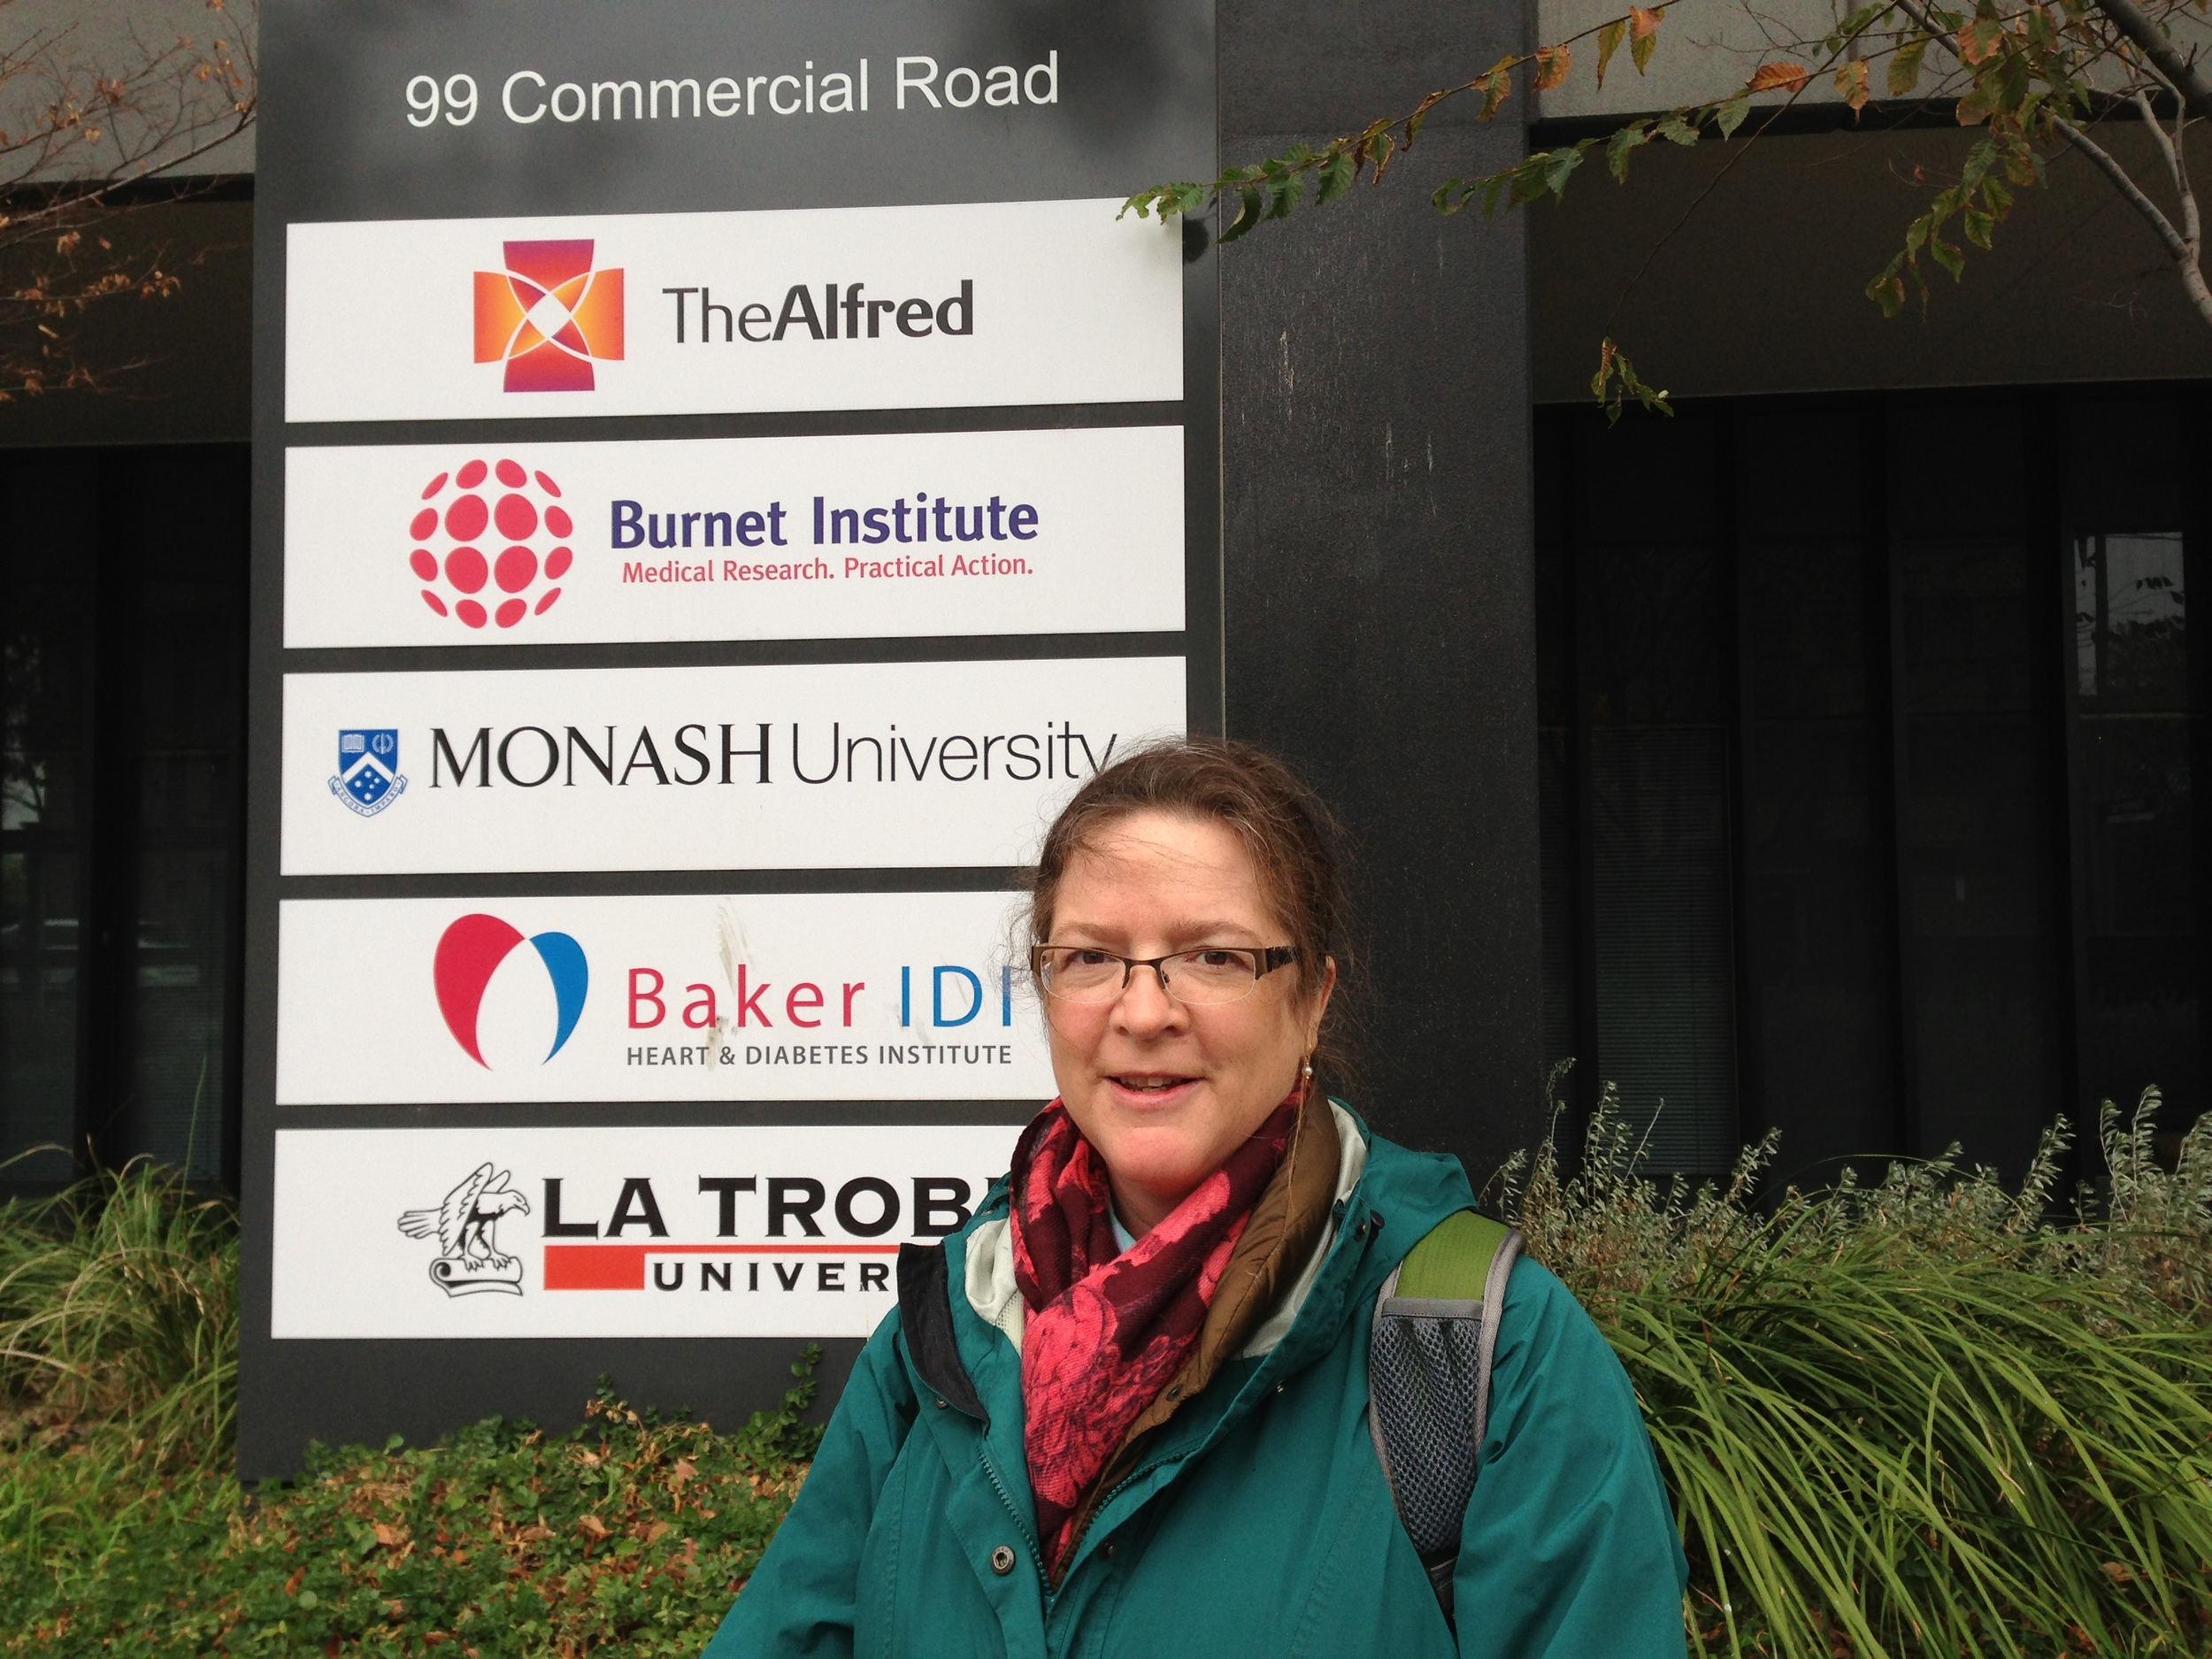 After almost 45 hours of travelPatsy finally arrived at Monash University in Australia, where she attended a  FODMAP seminar , met the Monash researchers, and delivered 80 loaves of U.S. bread to the FODMAP laboratory.